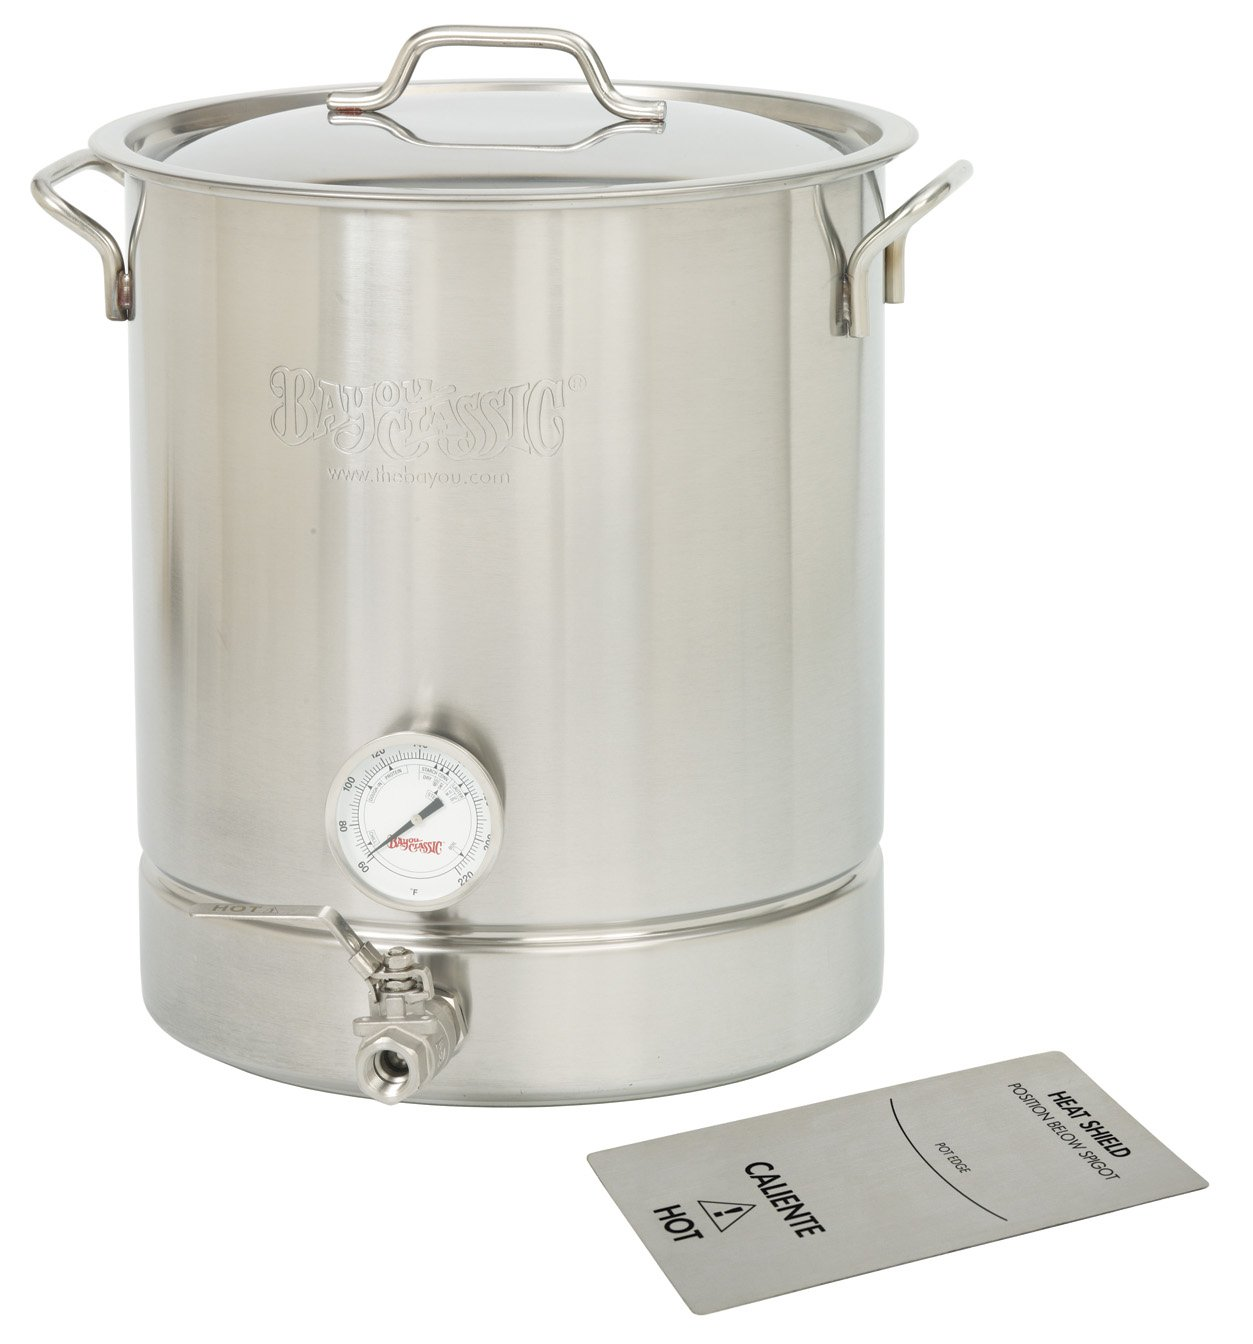 Cheap 40 Gallon Kettle Find 40 Gallon Kettle Deals On Line At